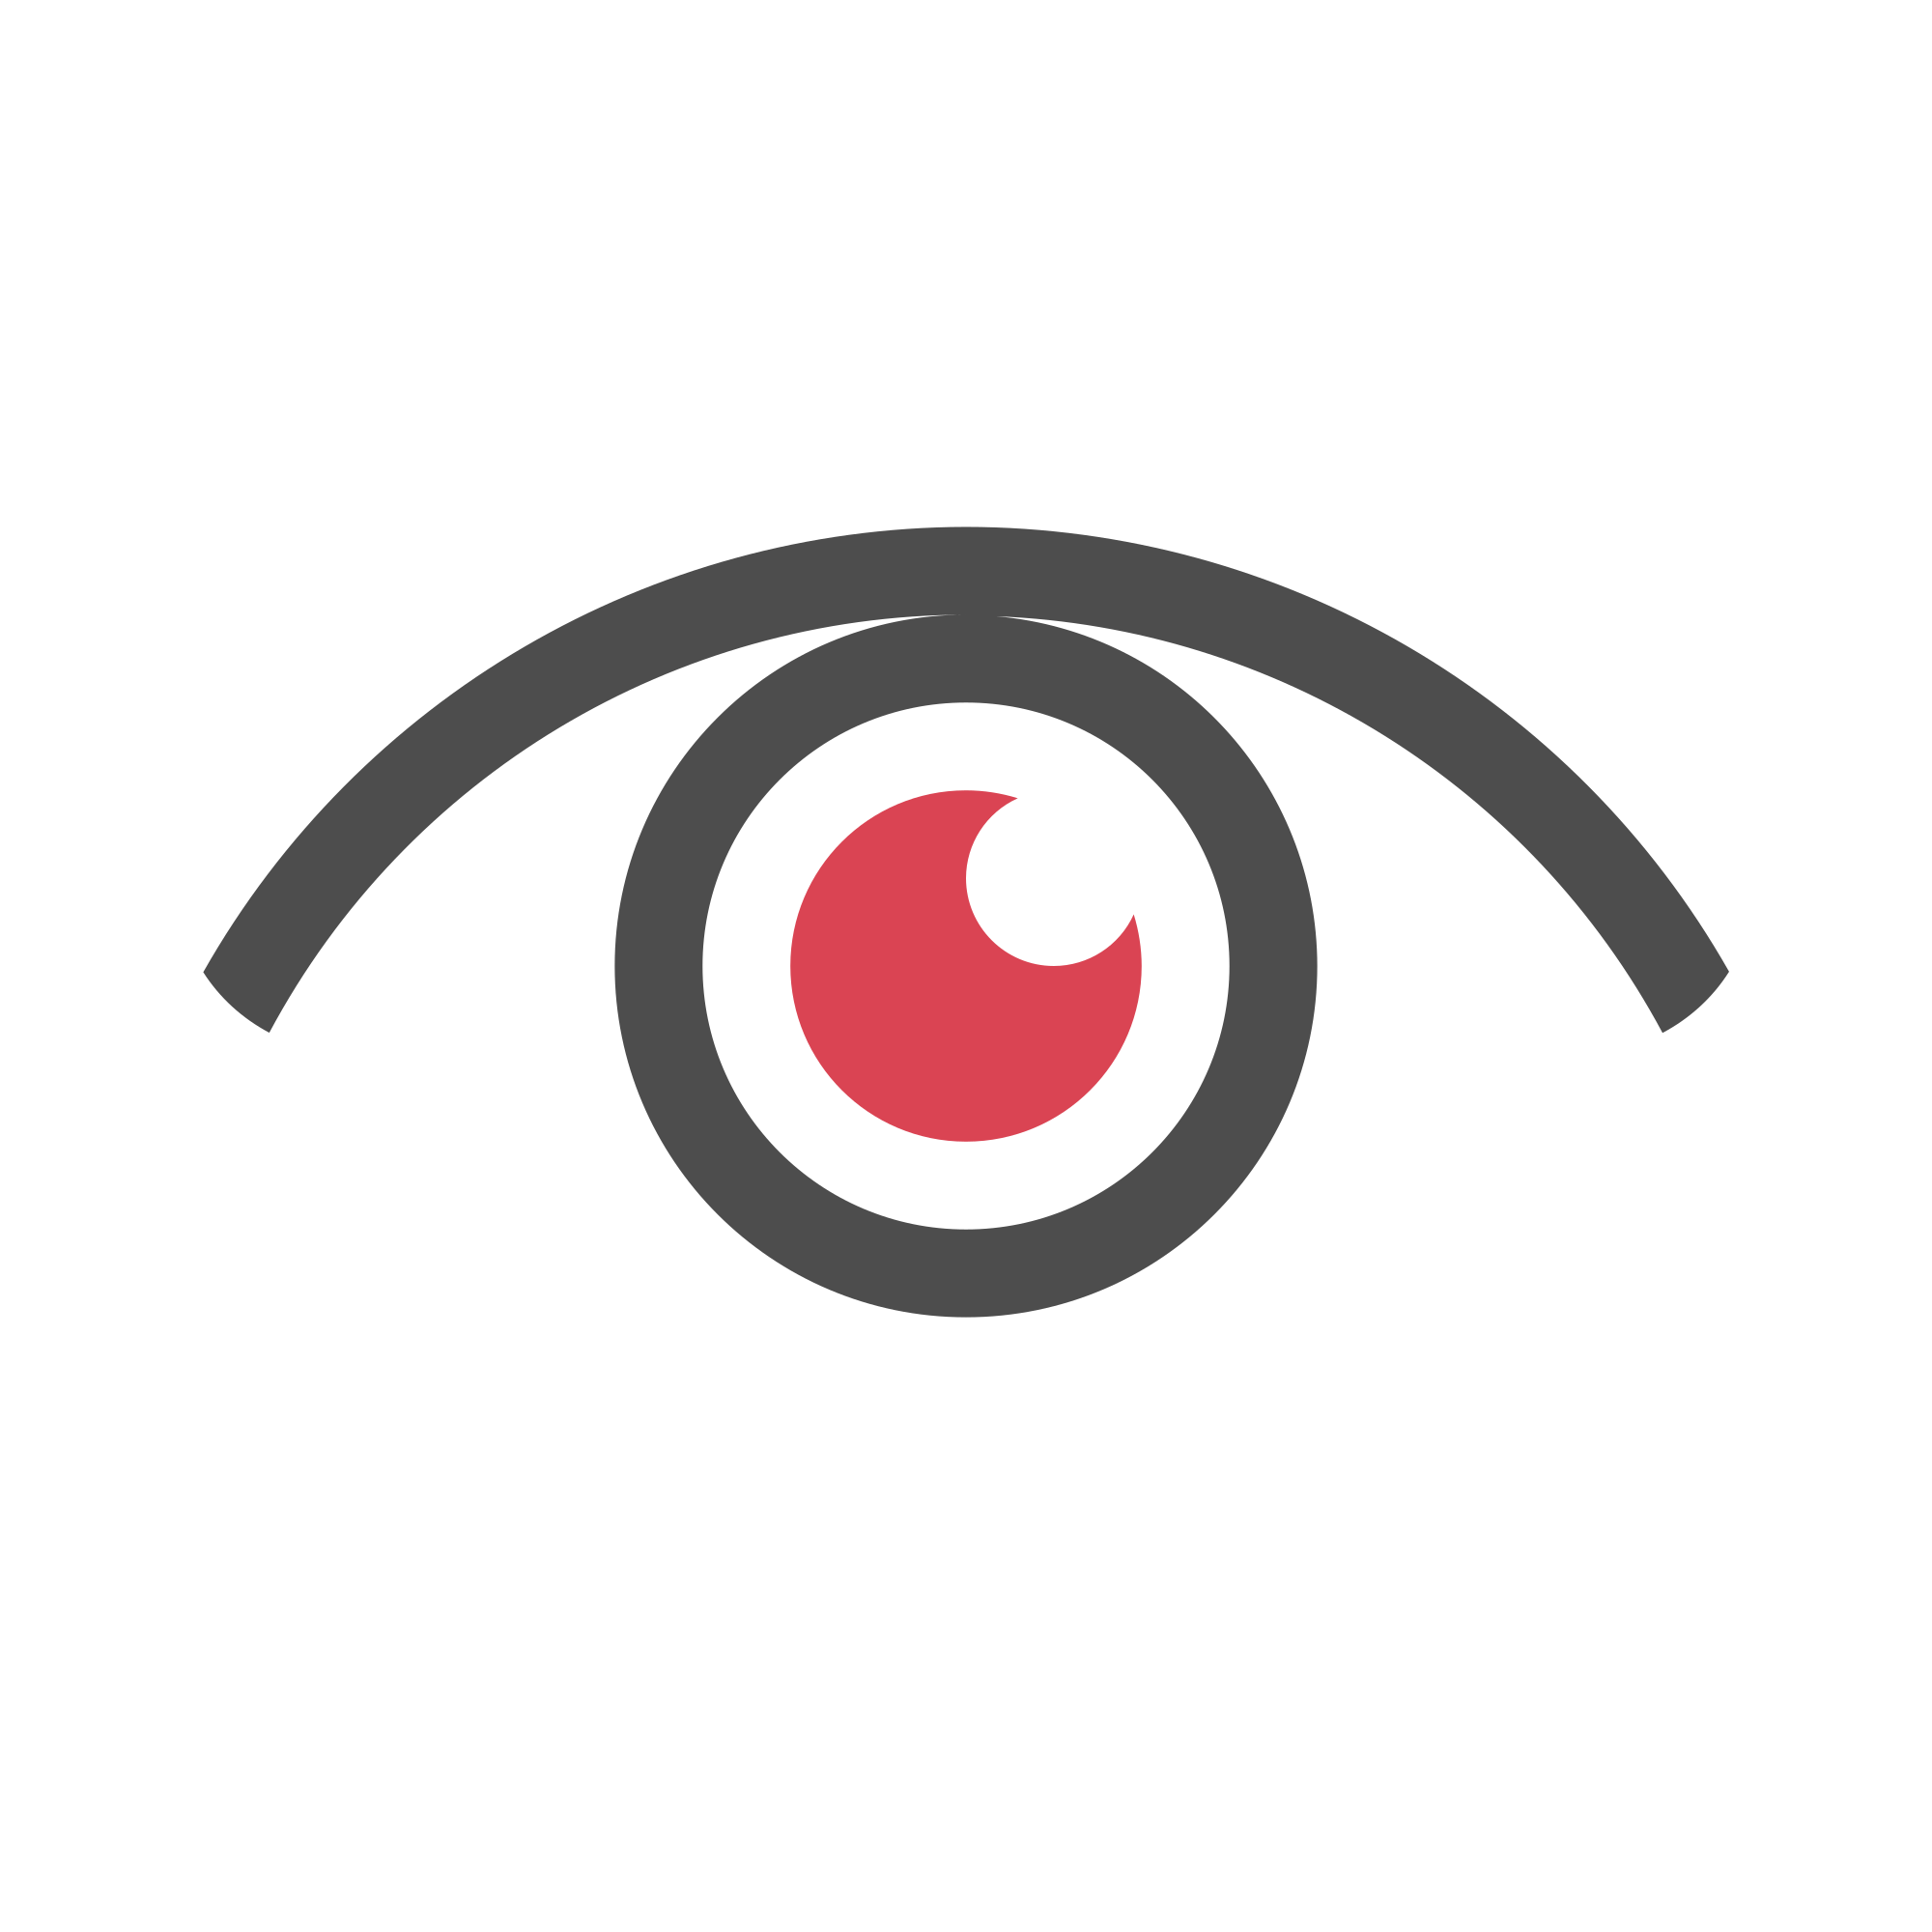 Red Eyes svg #11, Download drawings